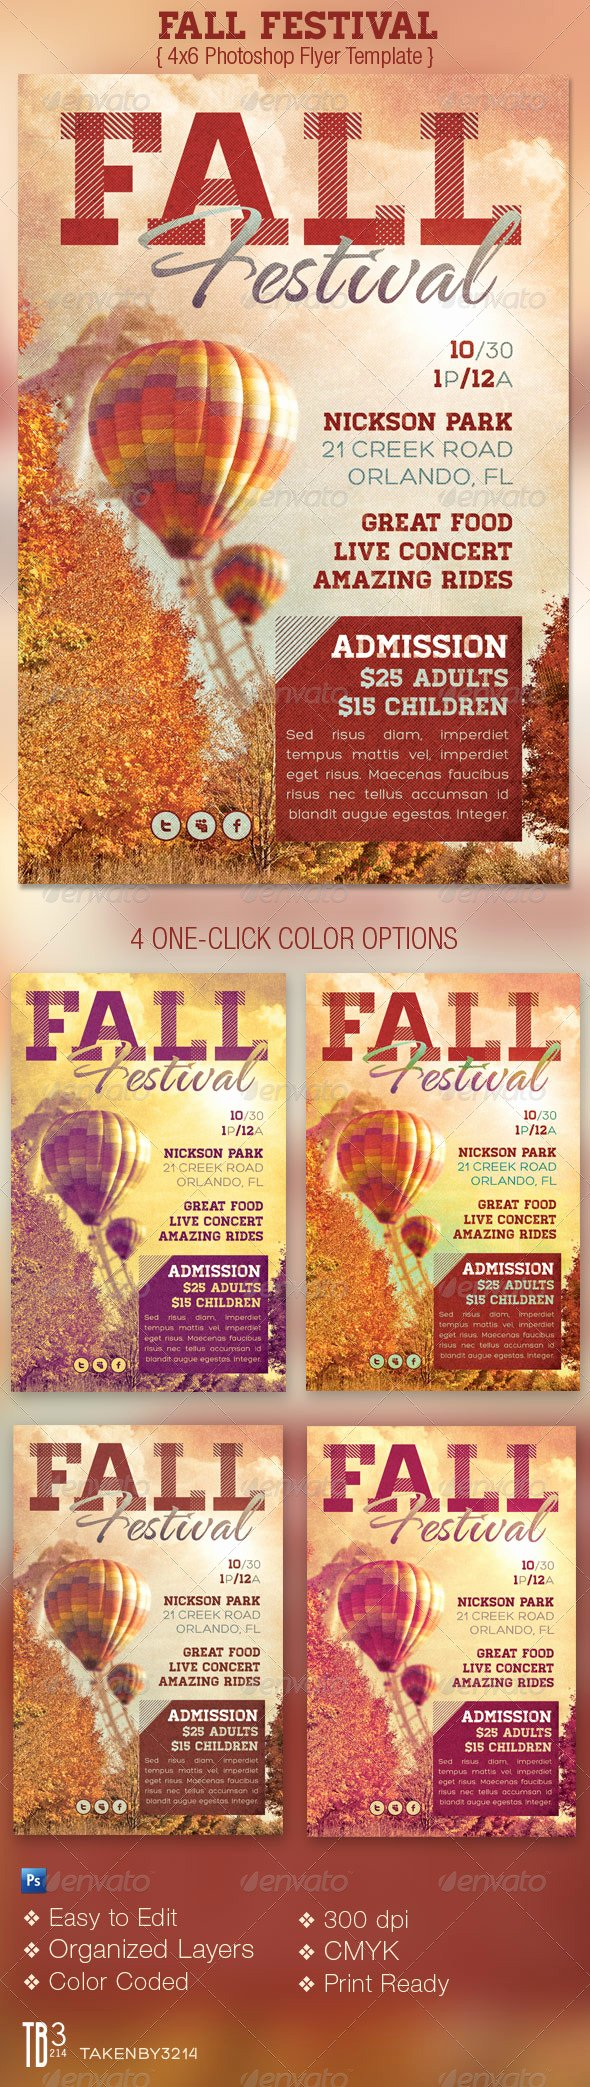 Fall Festival event Flyer Template by Godserv2